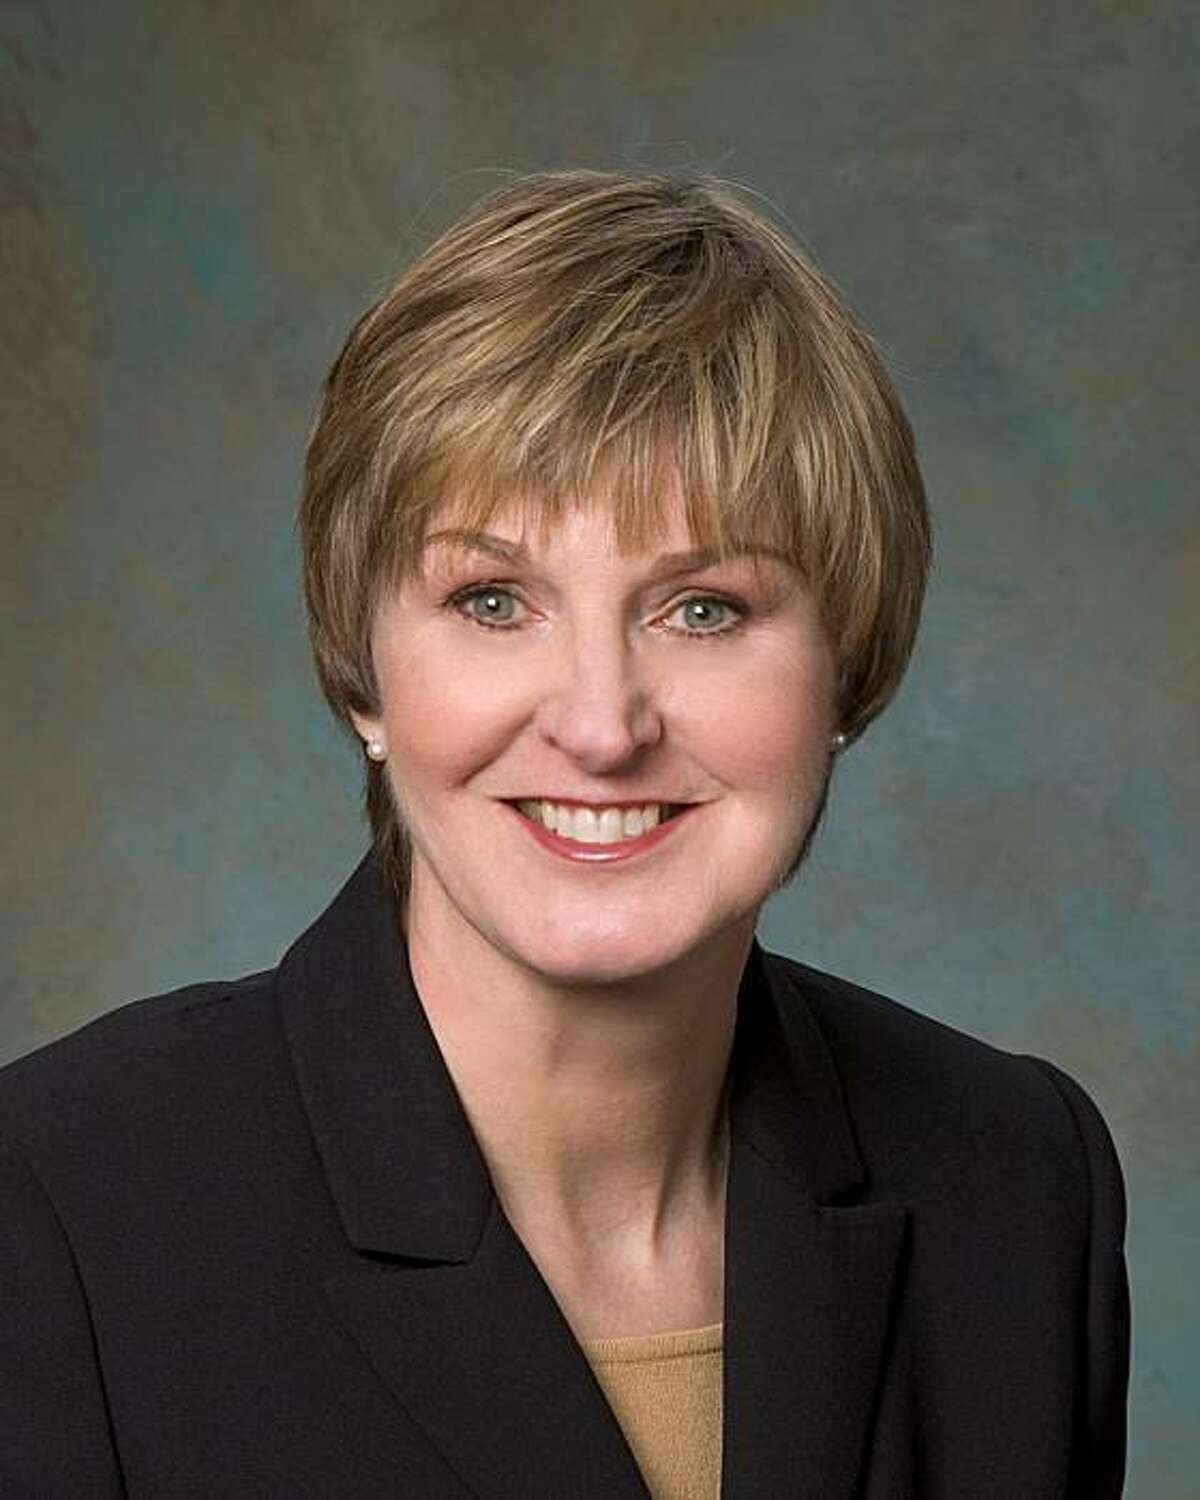 Sharon Browne, a Sacramento attorney nominated by President Obama to the board of directors of the Legal Services Corp.